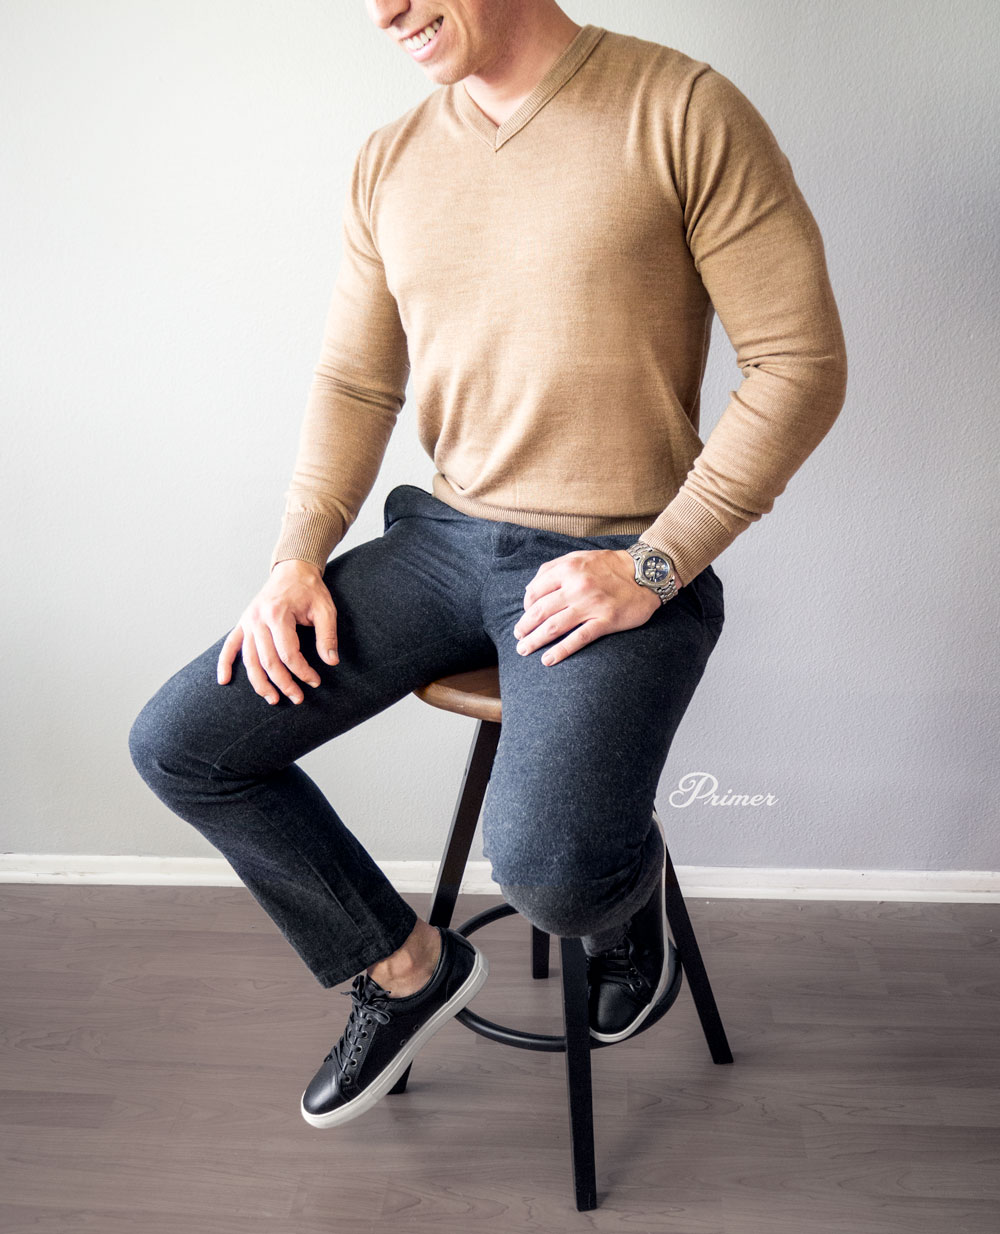 What to wear to a casual office - Casual office men's style inspiration